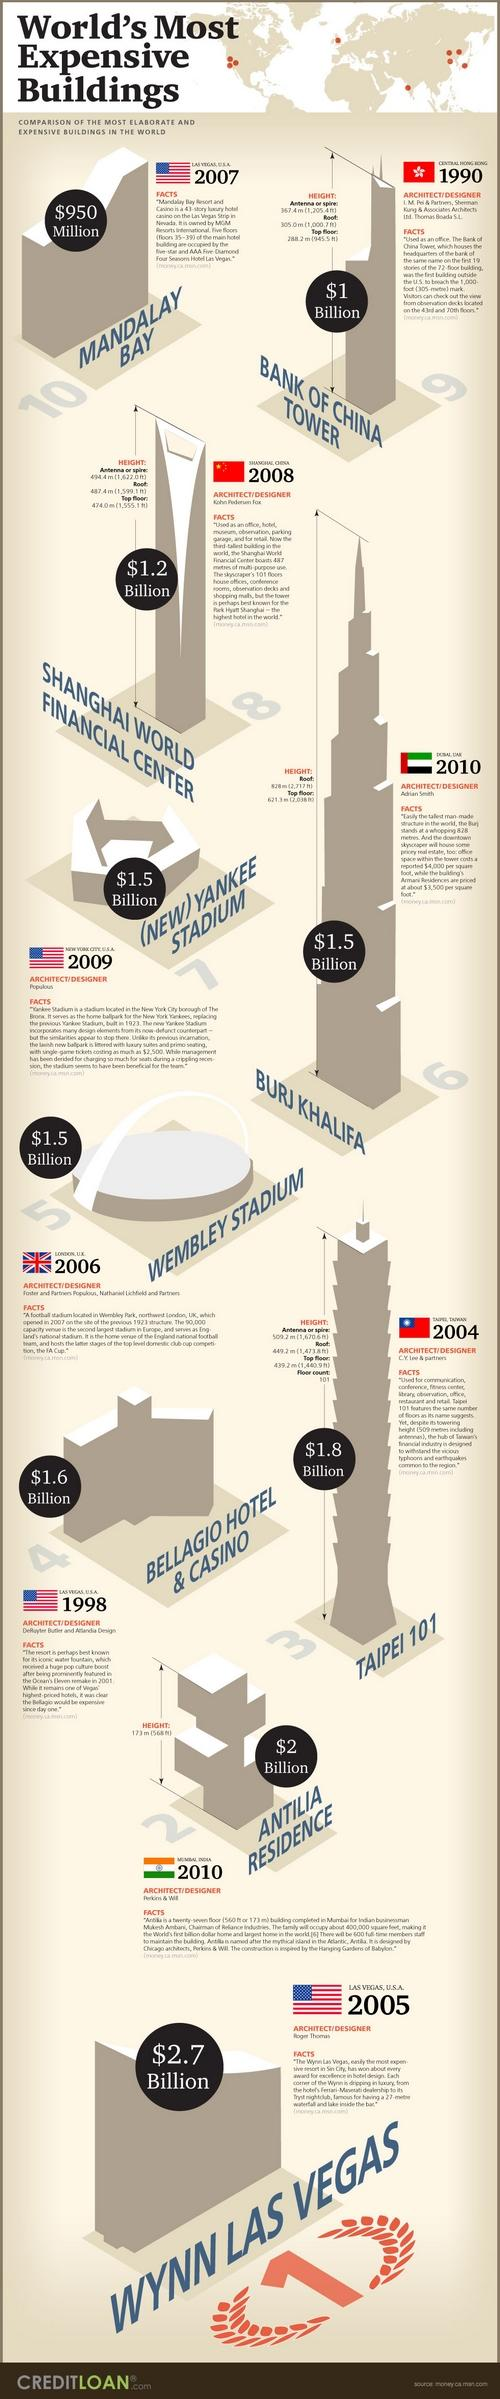 worlds expensive buildings